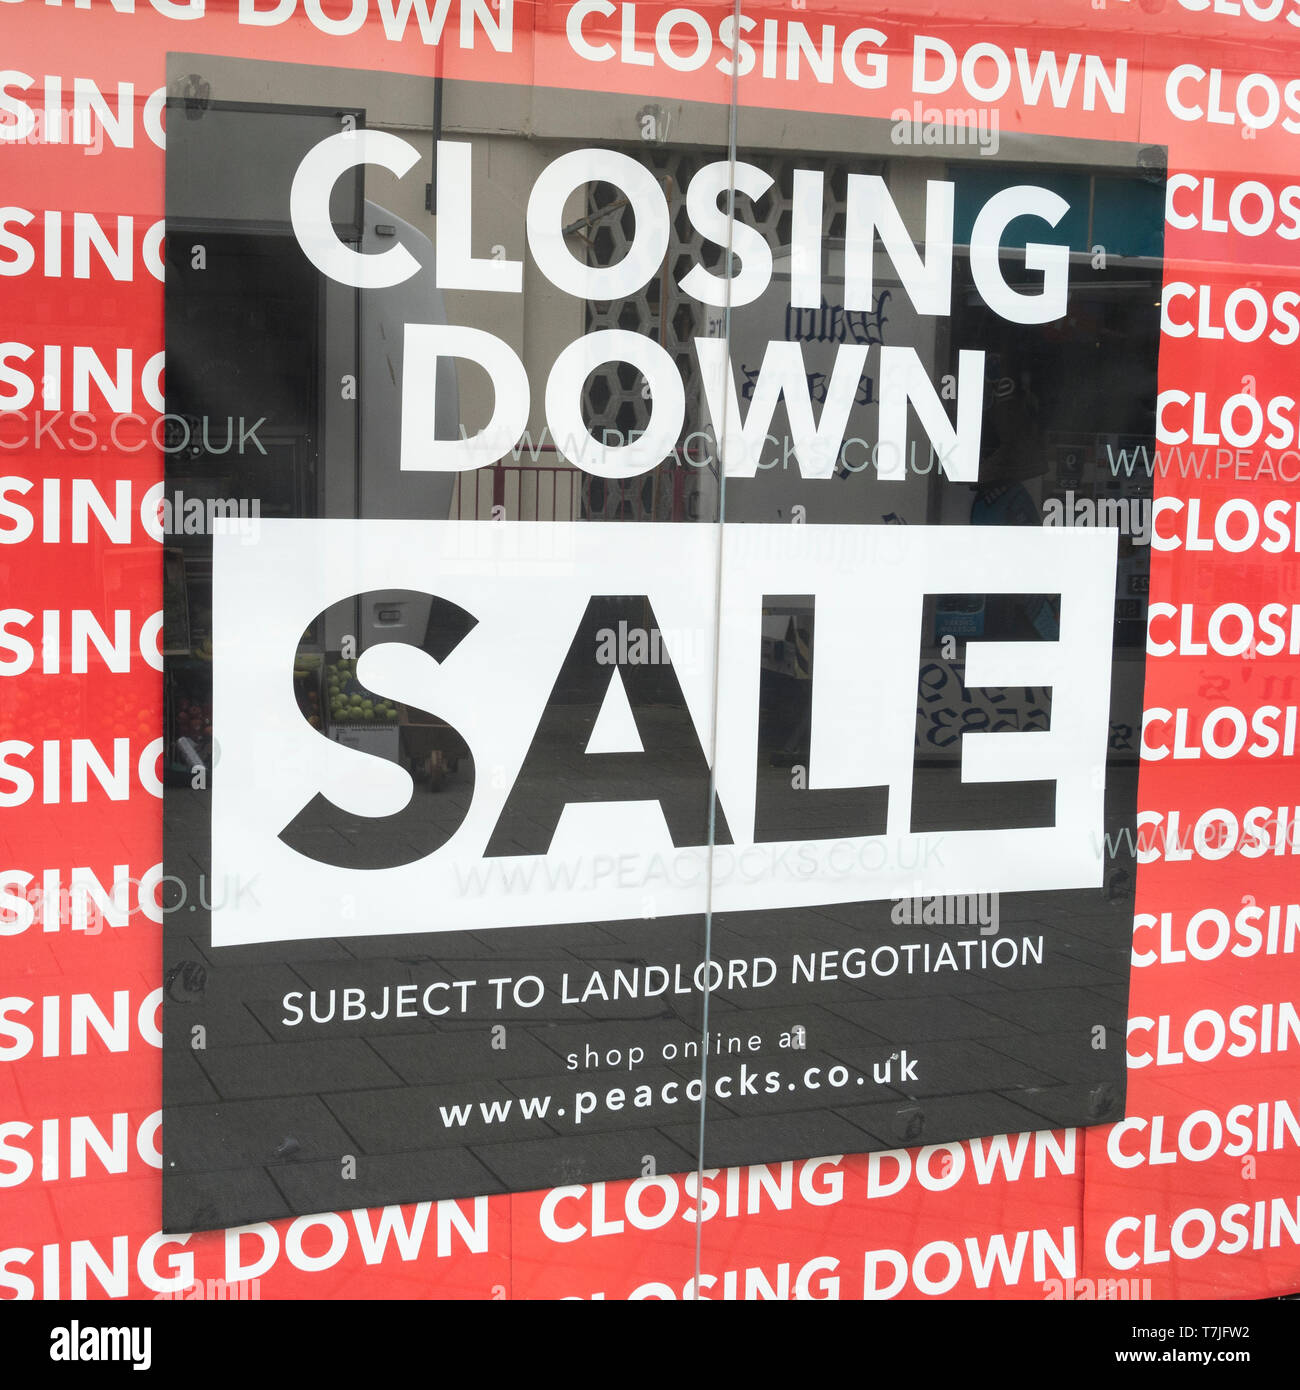 St Austell Peacocks shop Closing Down sign. Metaphor economic slow-down, falling sales, retail and high street crisis casualties, death of high street Stock Photo